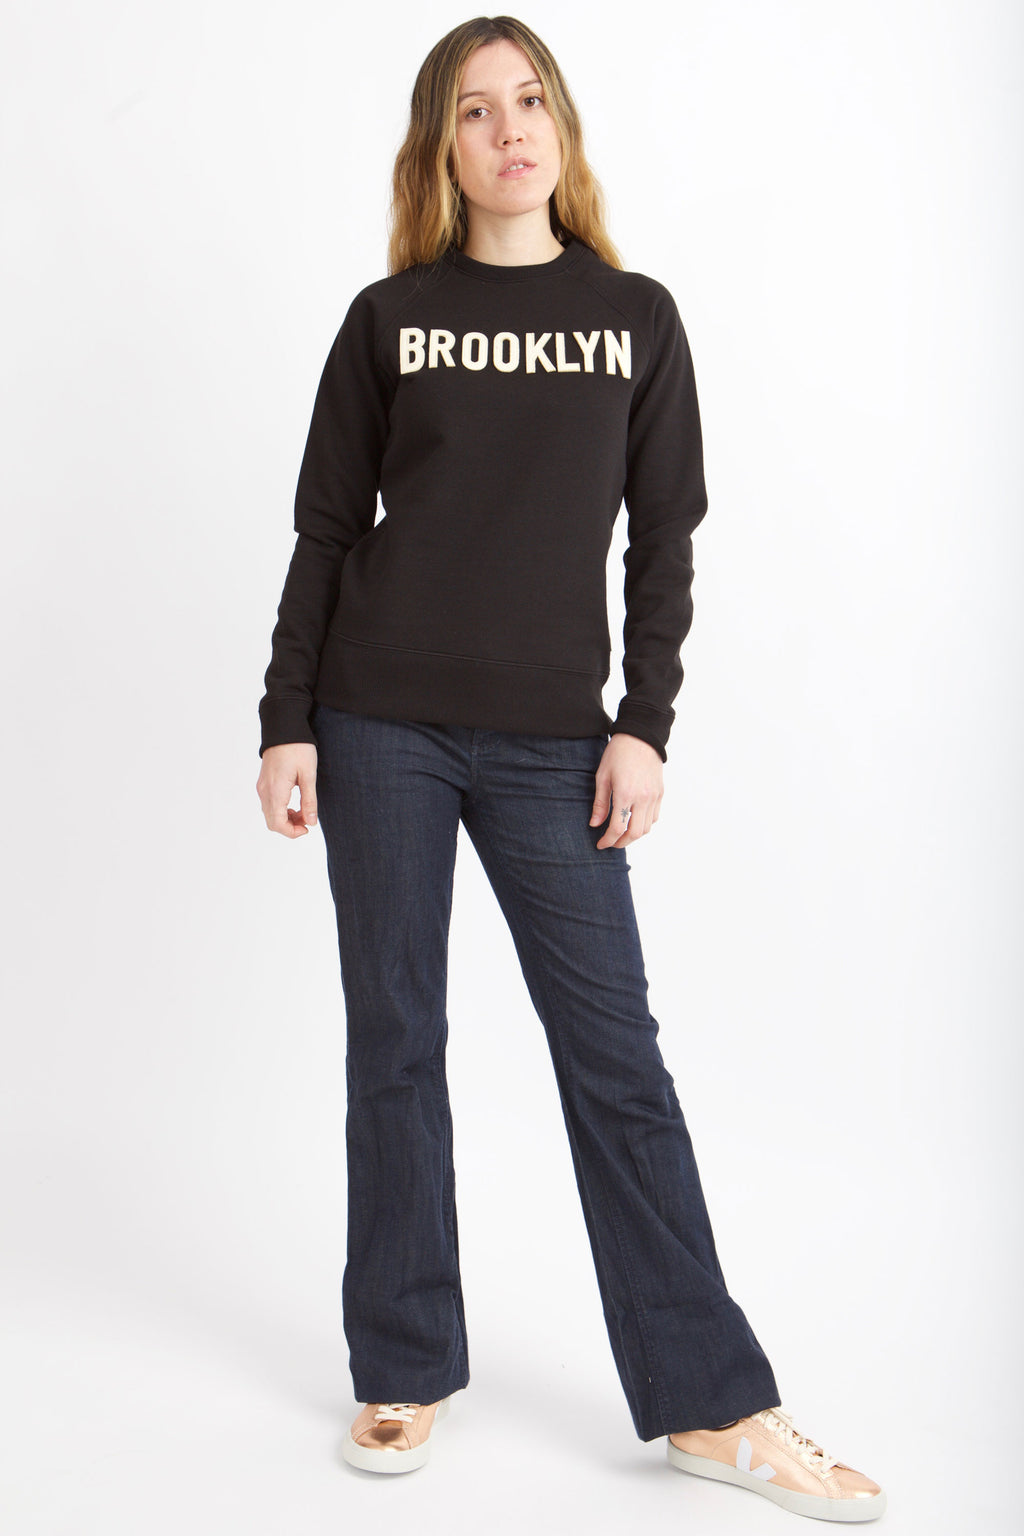 Woman standing wearing black sweatshirt with white letters spelling Brooklyn.